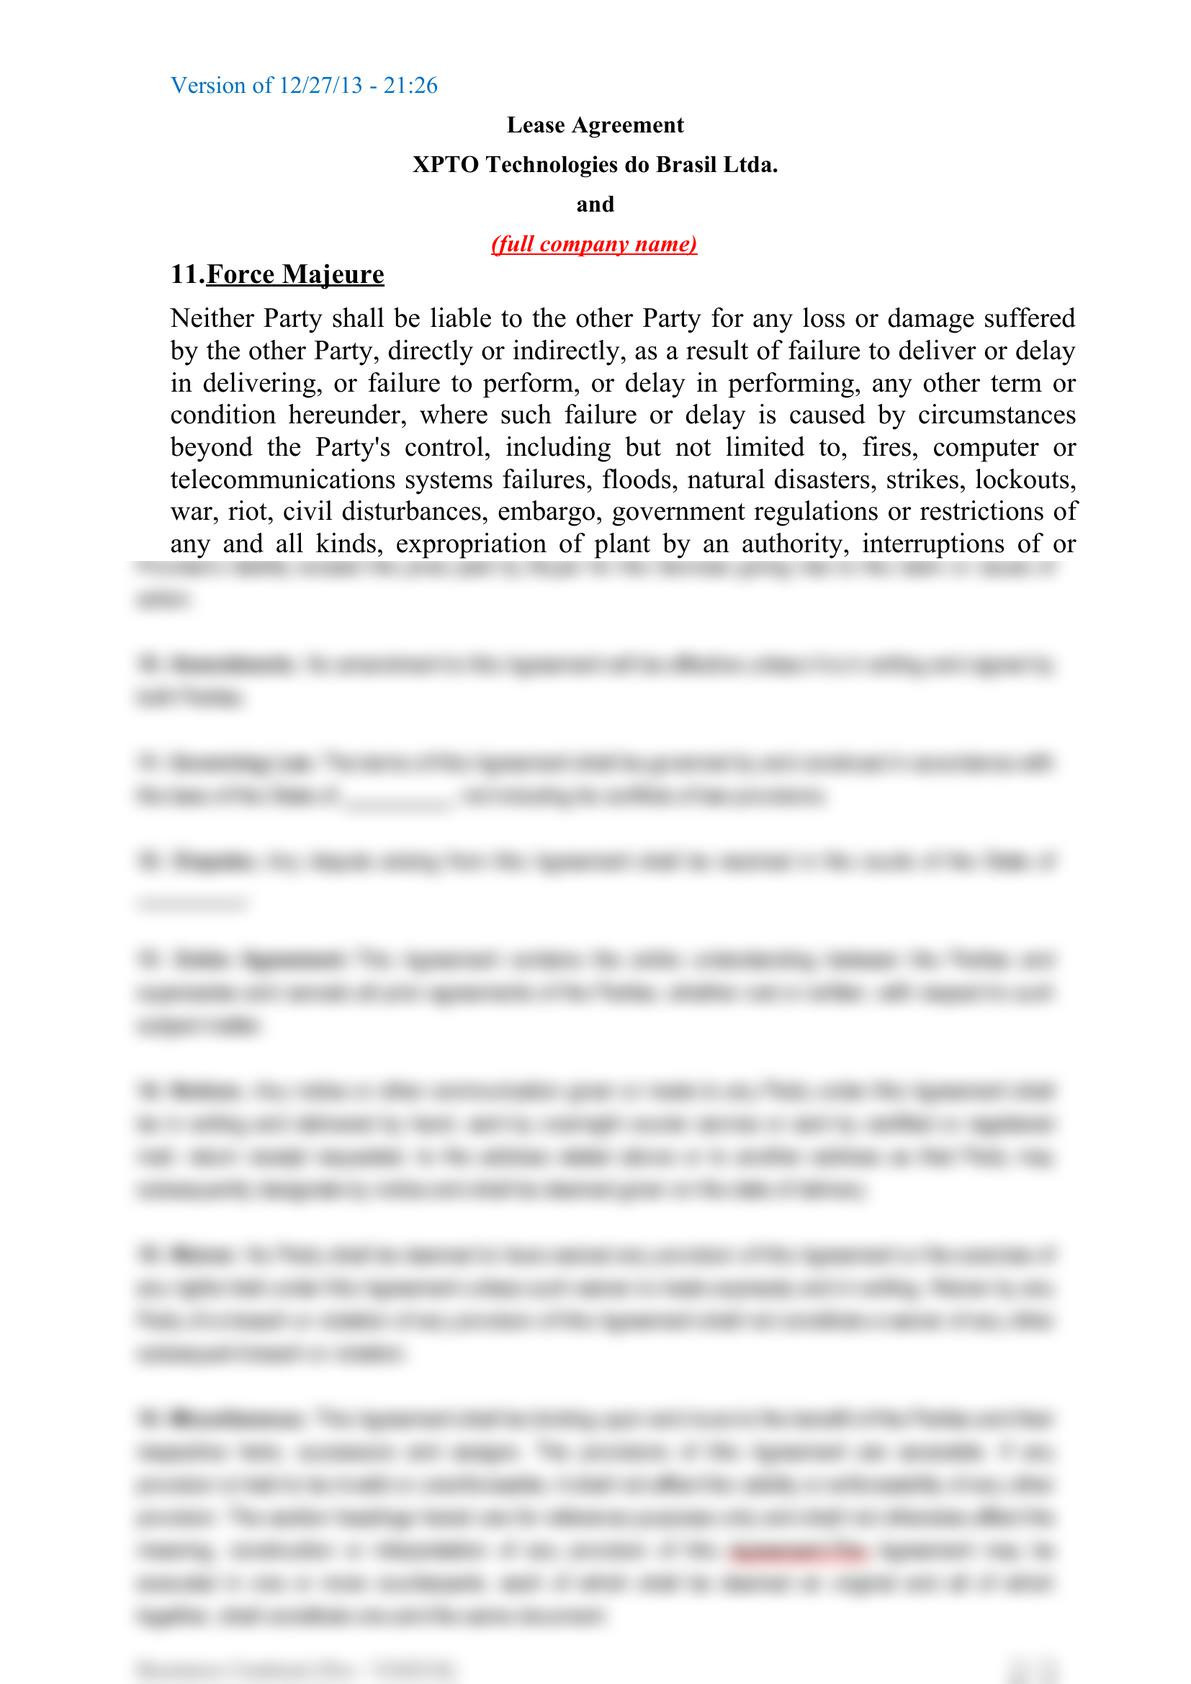 Subsea equipment lease agreement-8